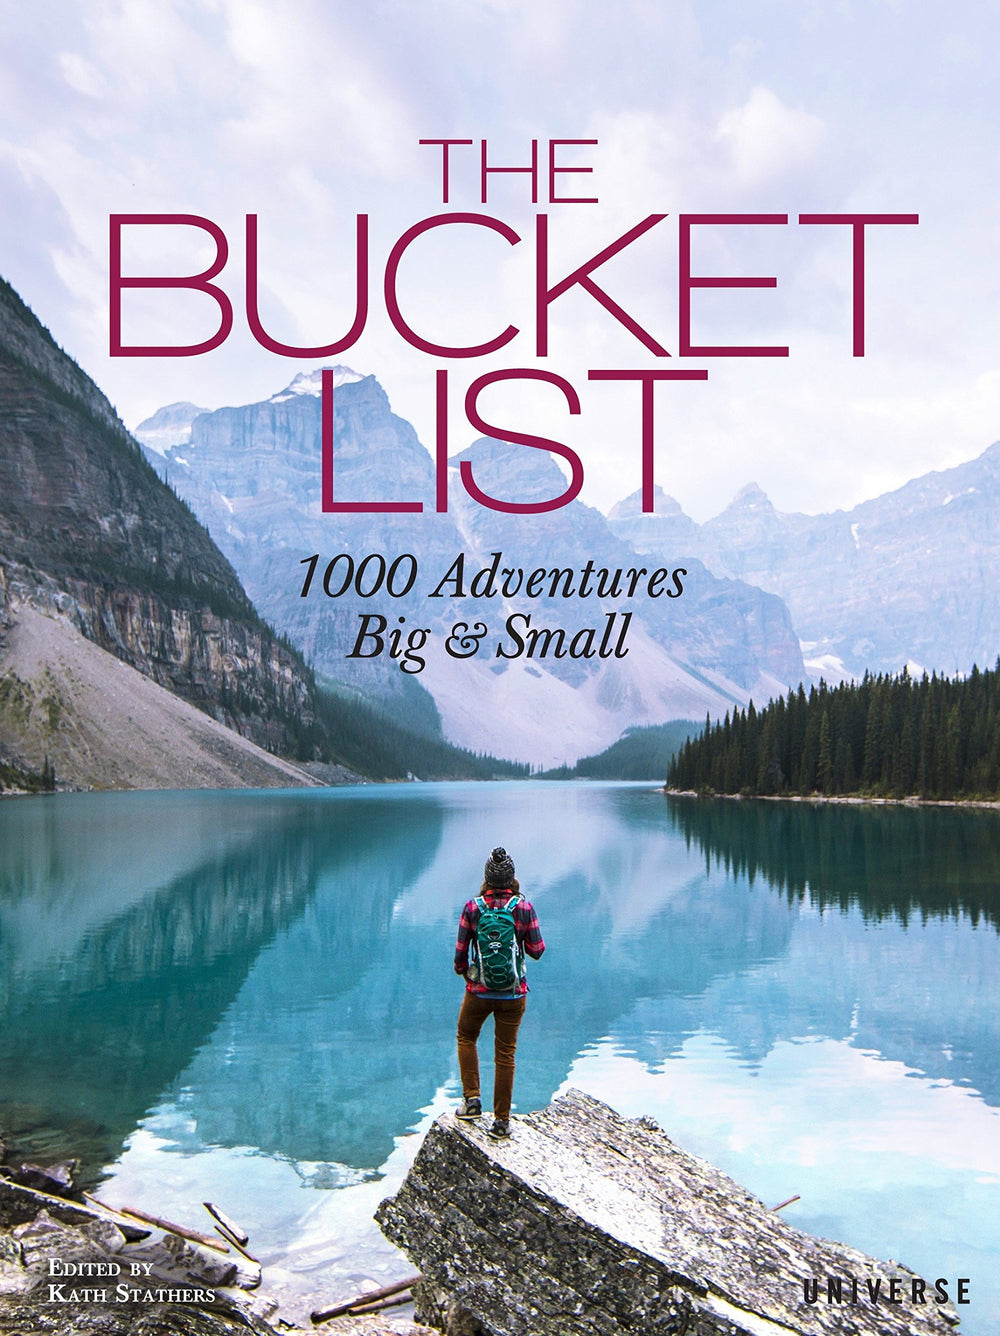 THE BUCKET LIST: 1,000 ADVENTURES BIG AND SMALL